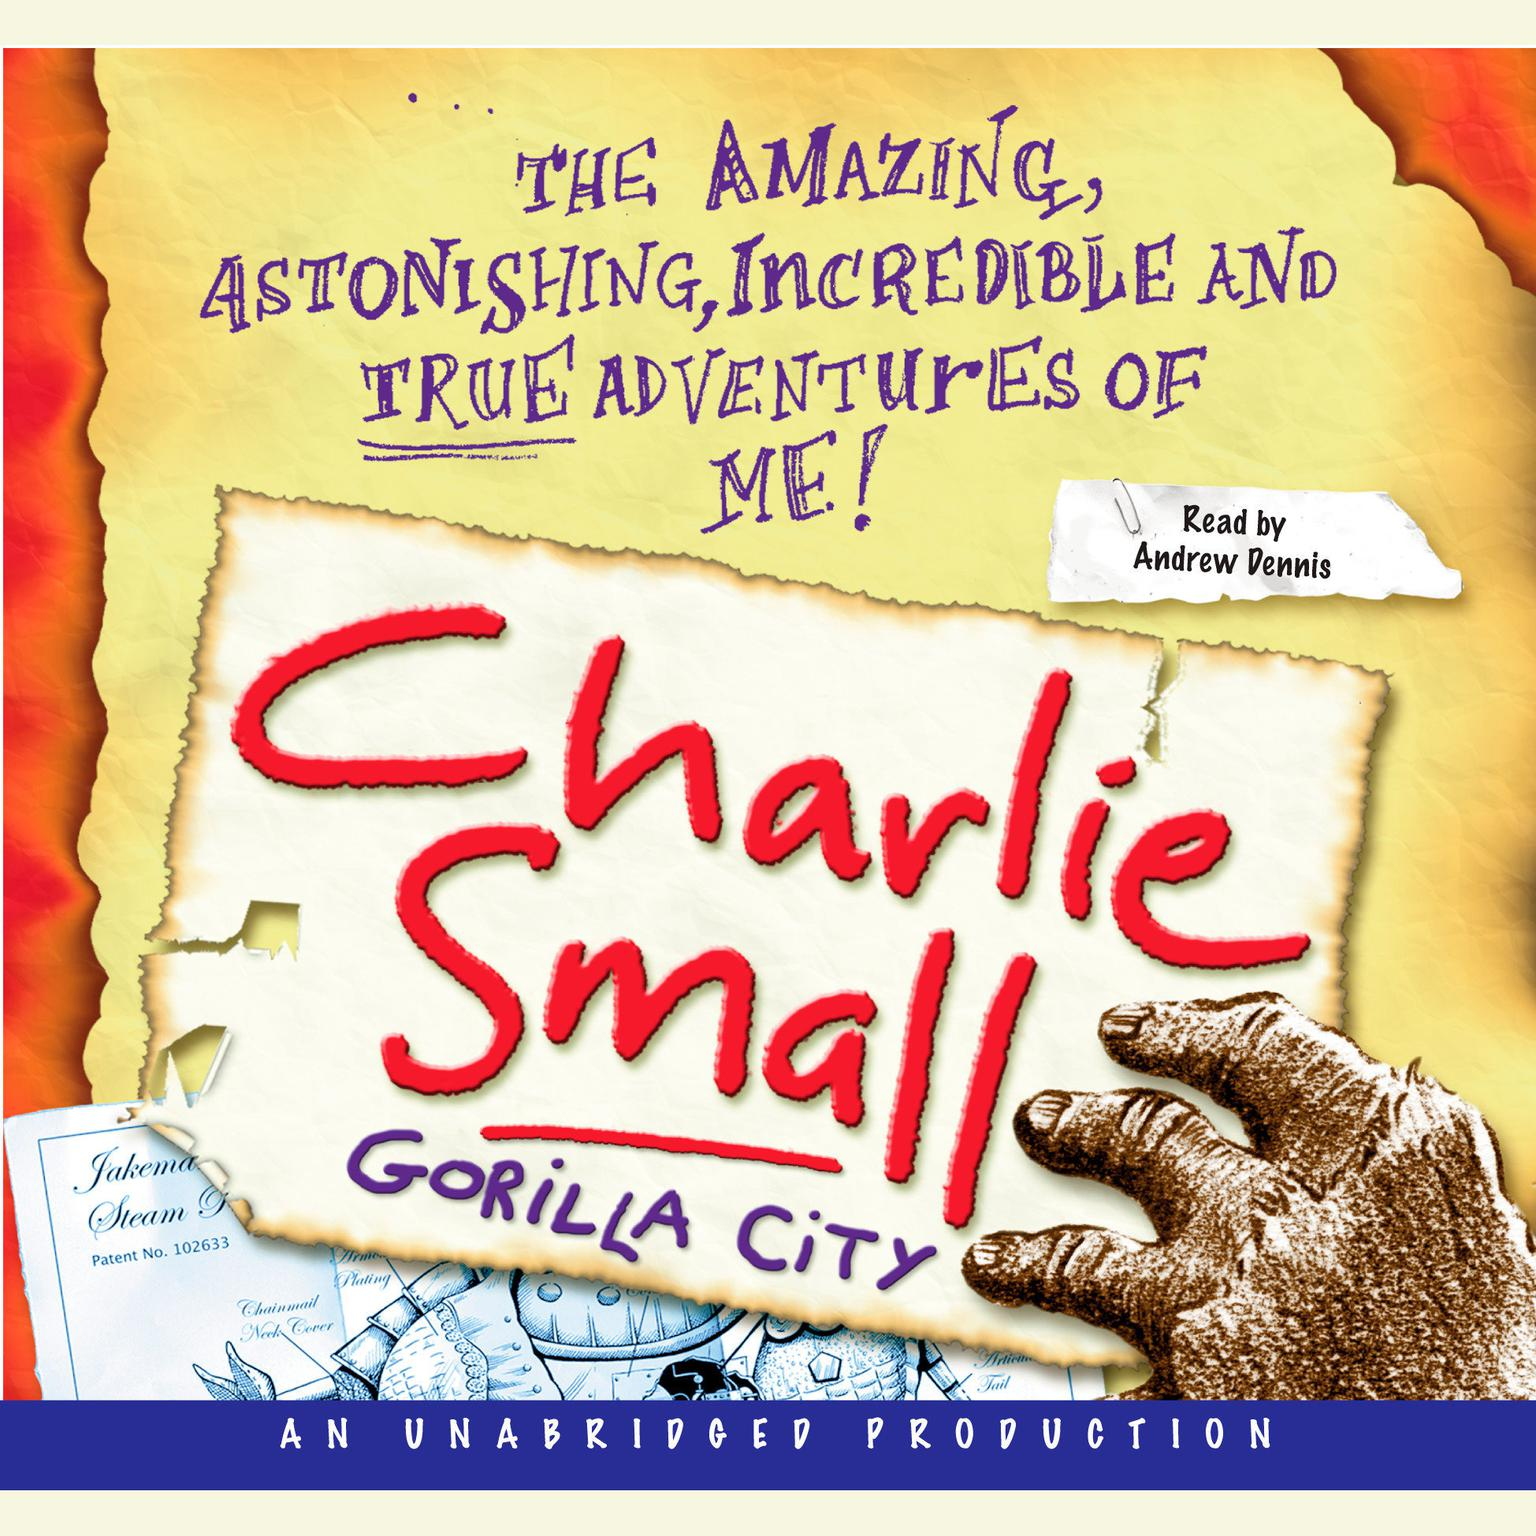 Printable Charlie Small 1:  Gorilla City Audiobook Cover Art